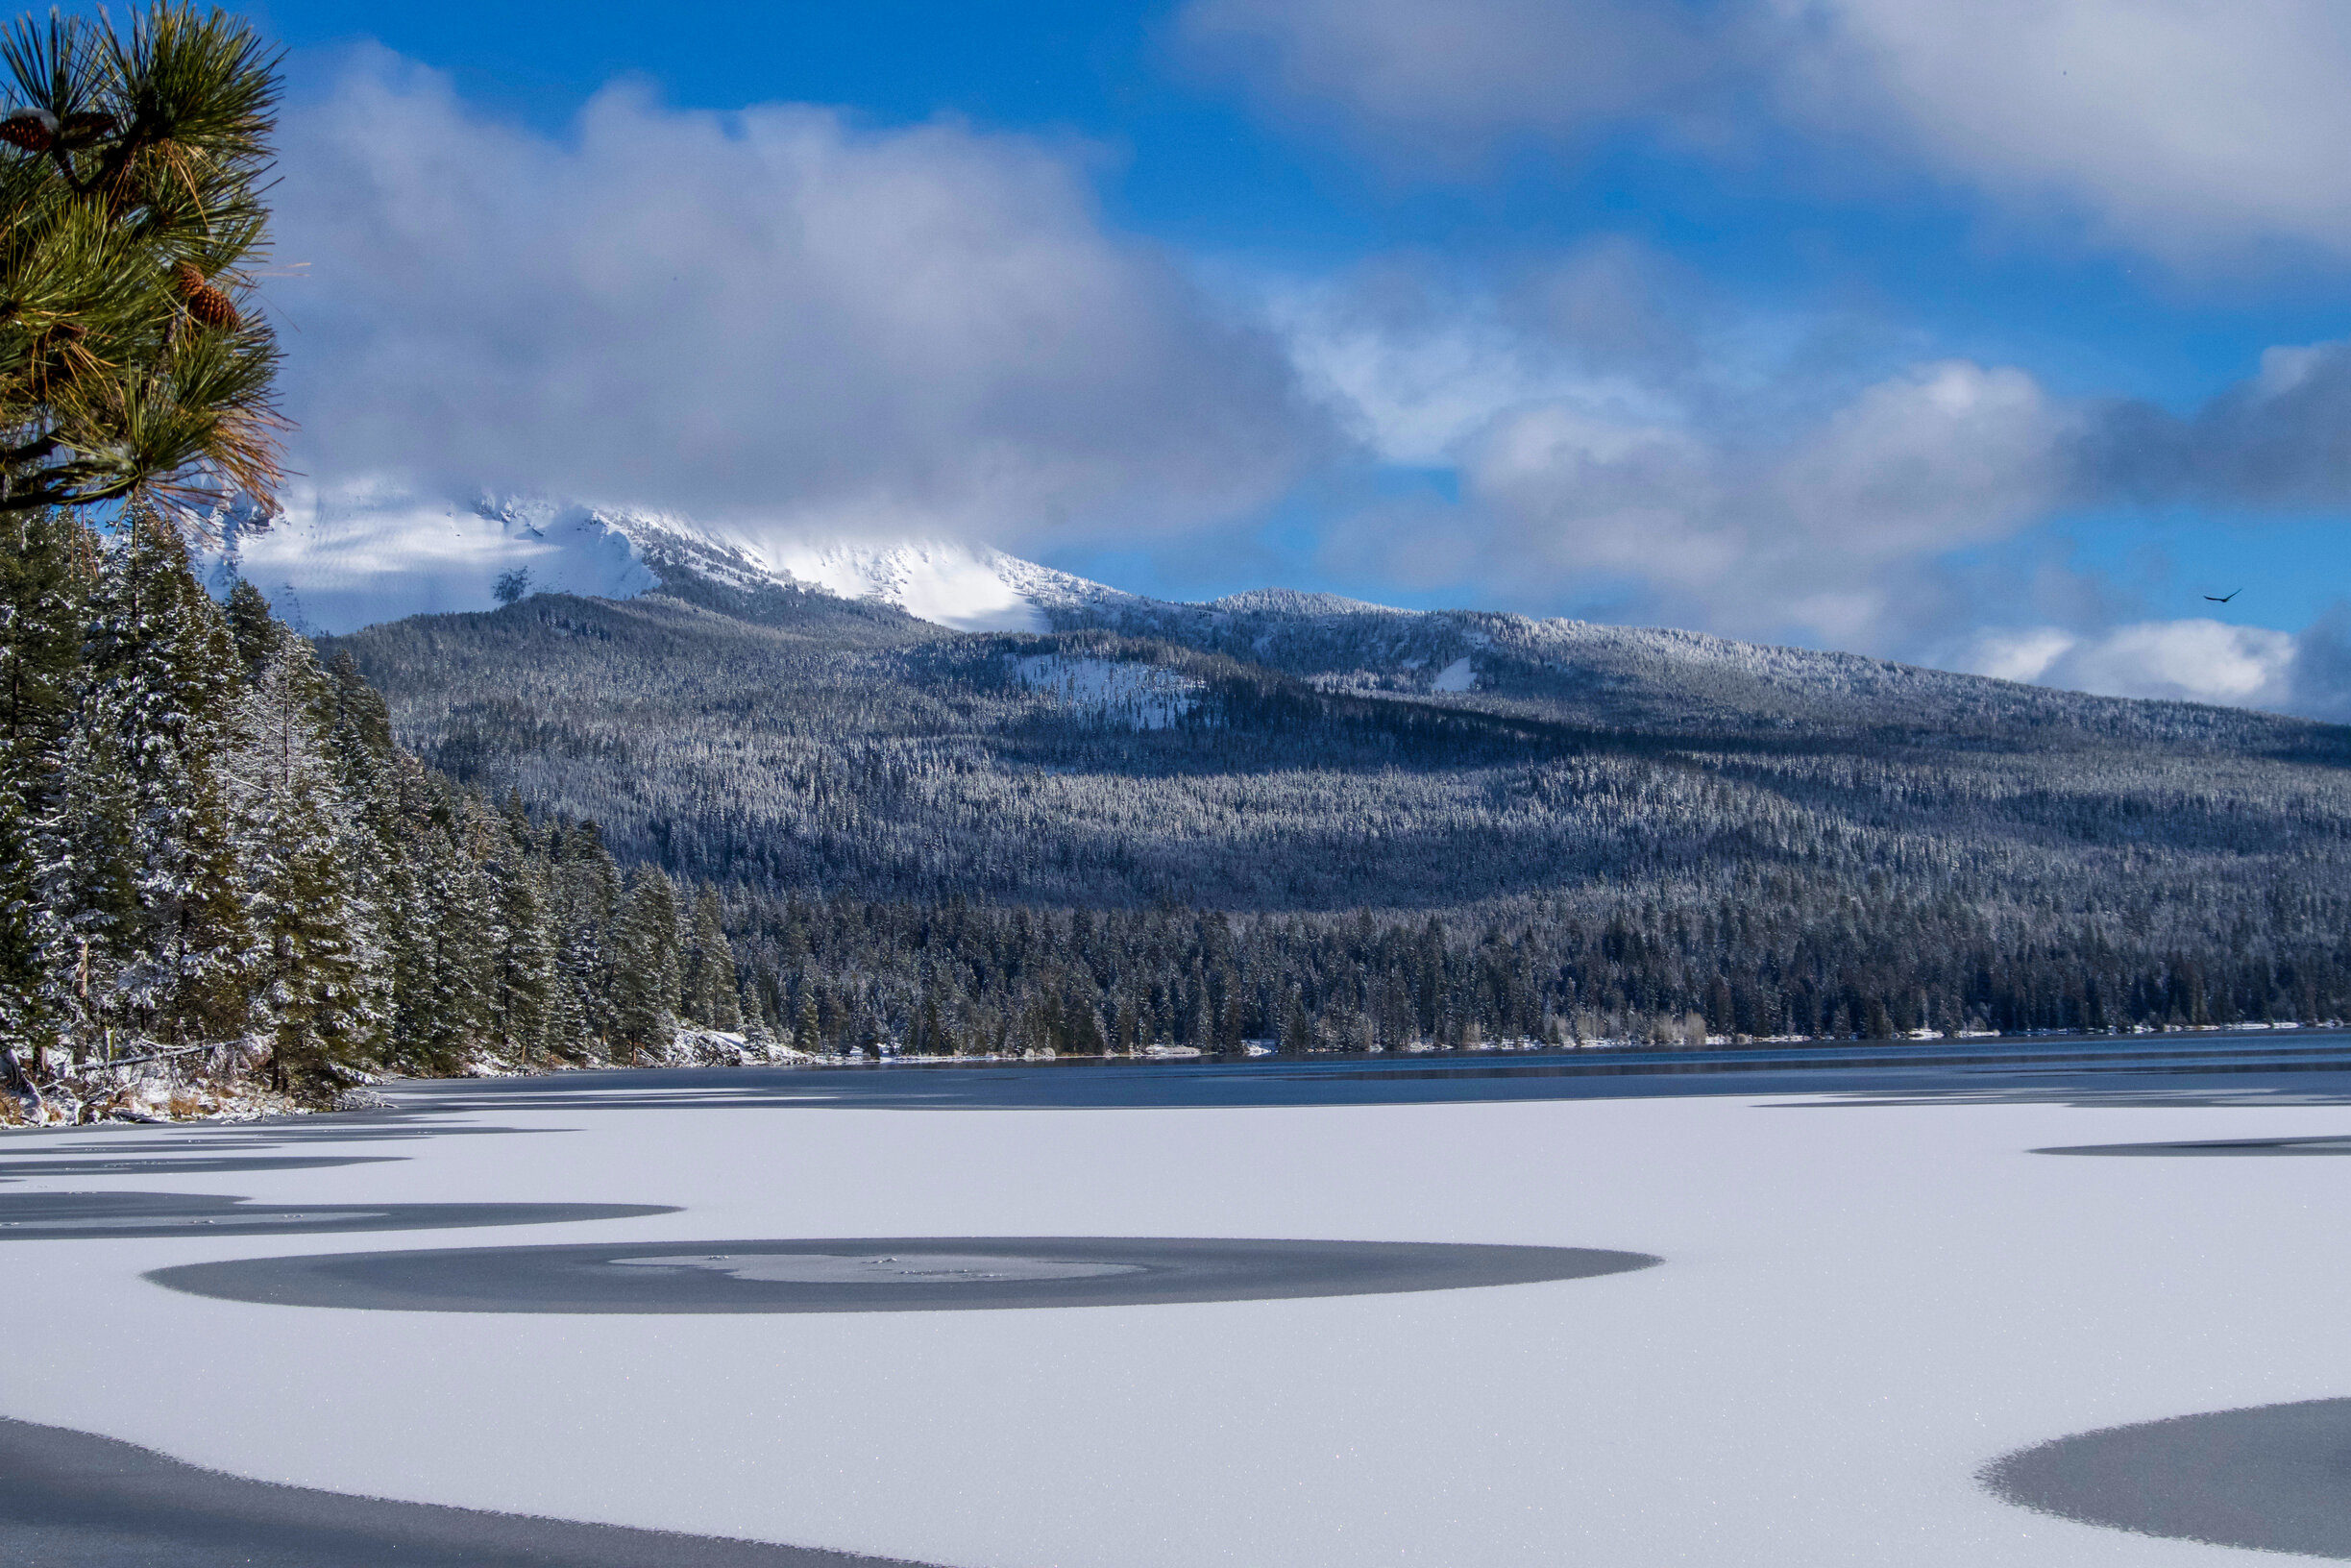 The view over the frozen Diamond Lake in Oregon, with snow-covered mountains lurking over the lake in the distance of the photo